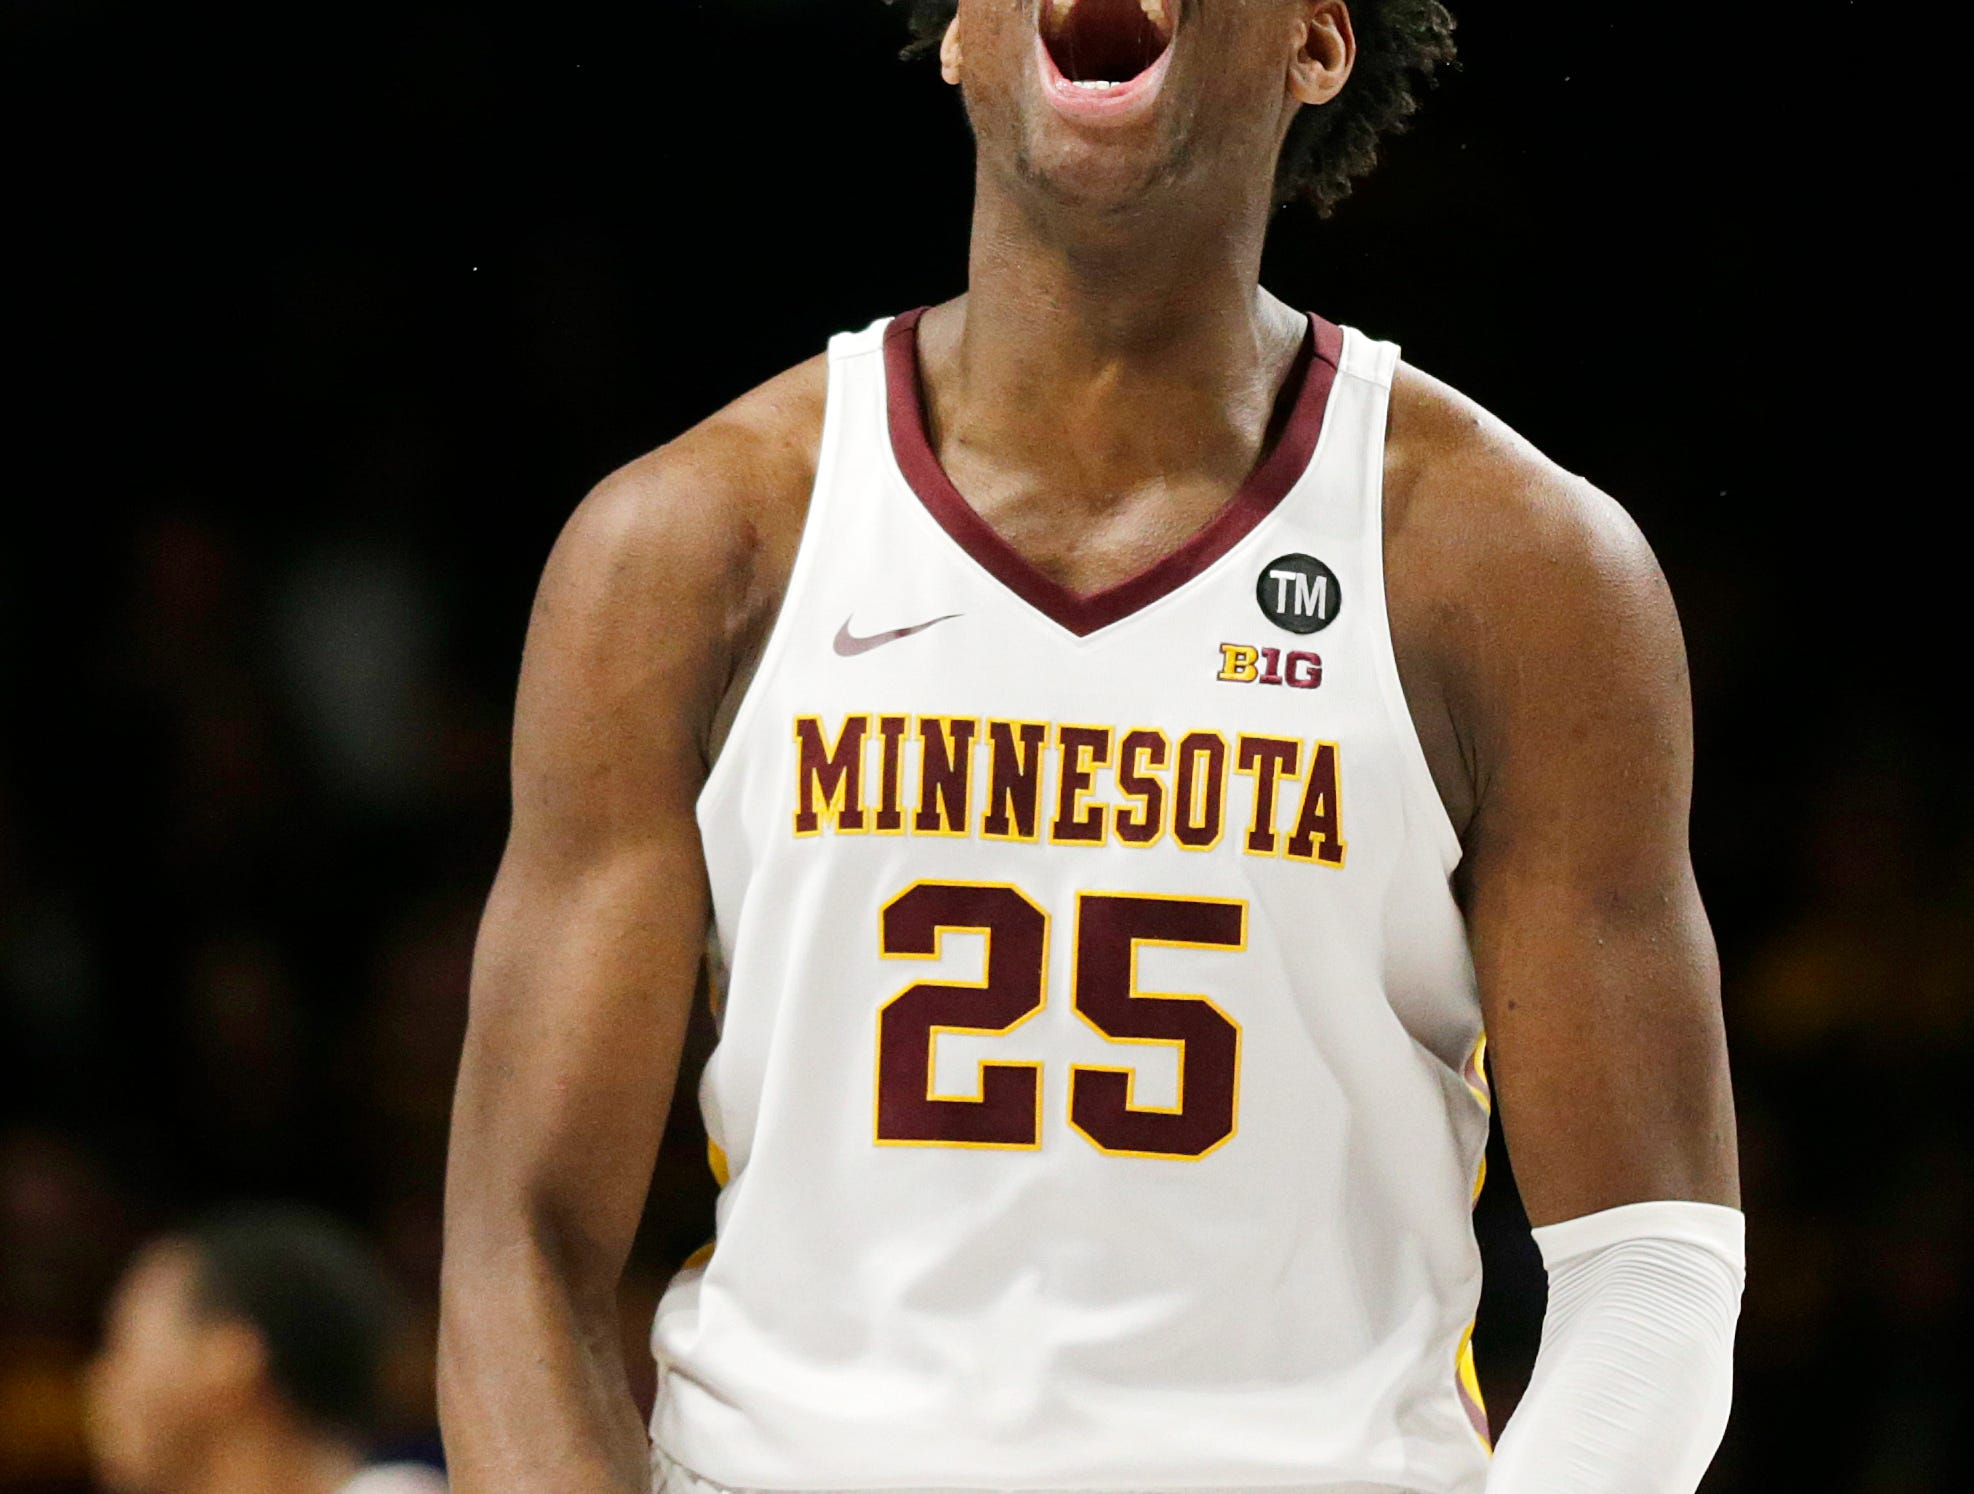 Minnesota center Daniel Oturu celebrates during the second half of an NCAA college basketball game against Rutgers Saturday, Jan. 12, 2019, in Minneapolis. Minnesota defeated Rutgers 88-70. (AP Photo/Andy Clayton-King)